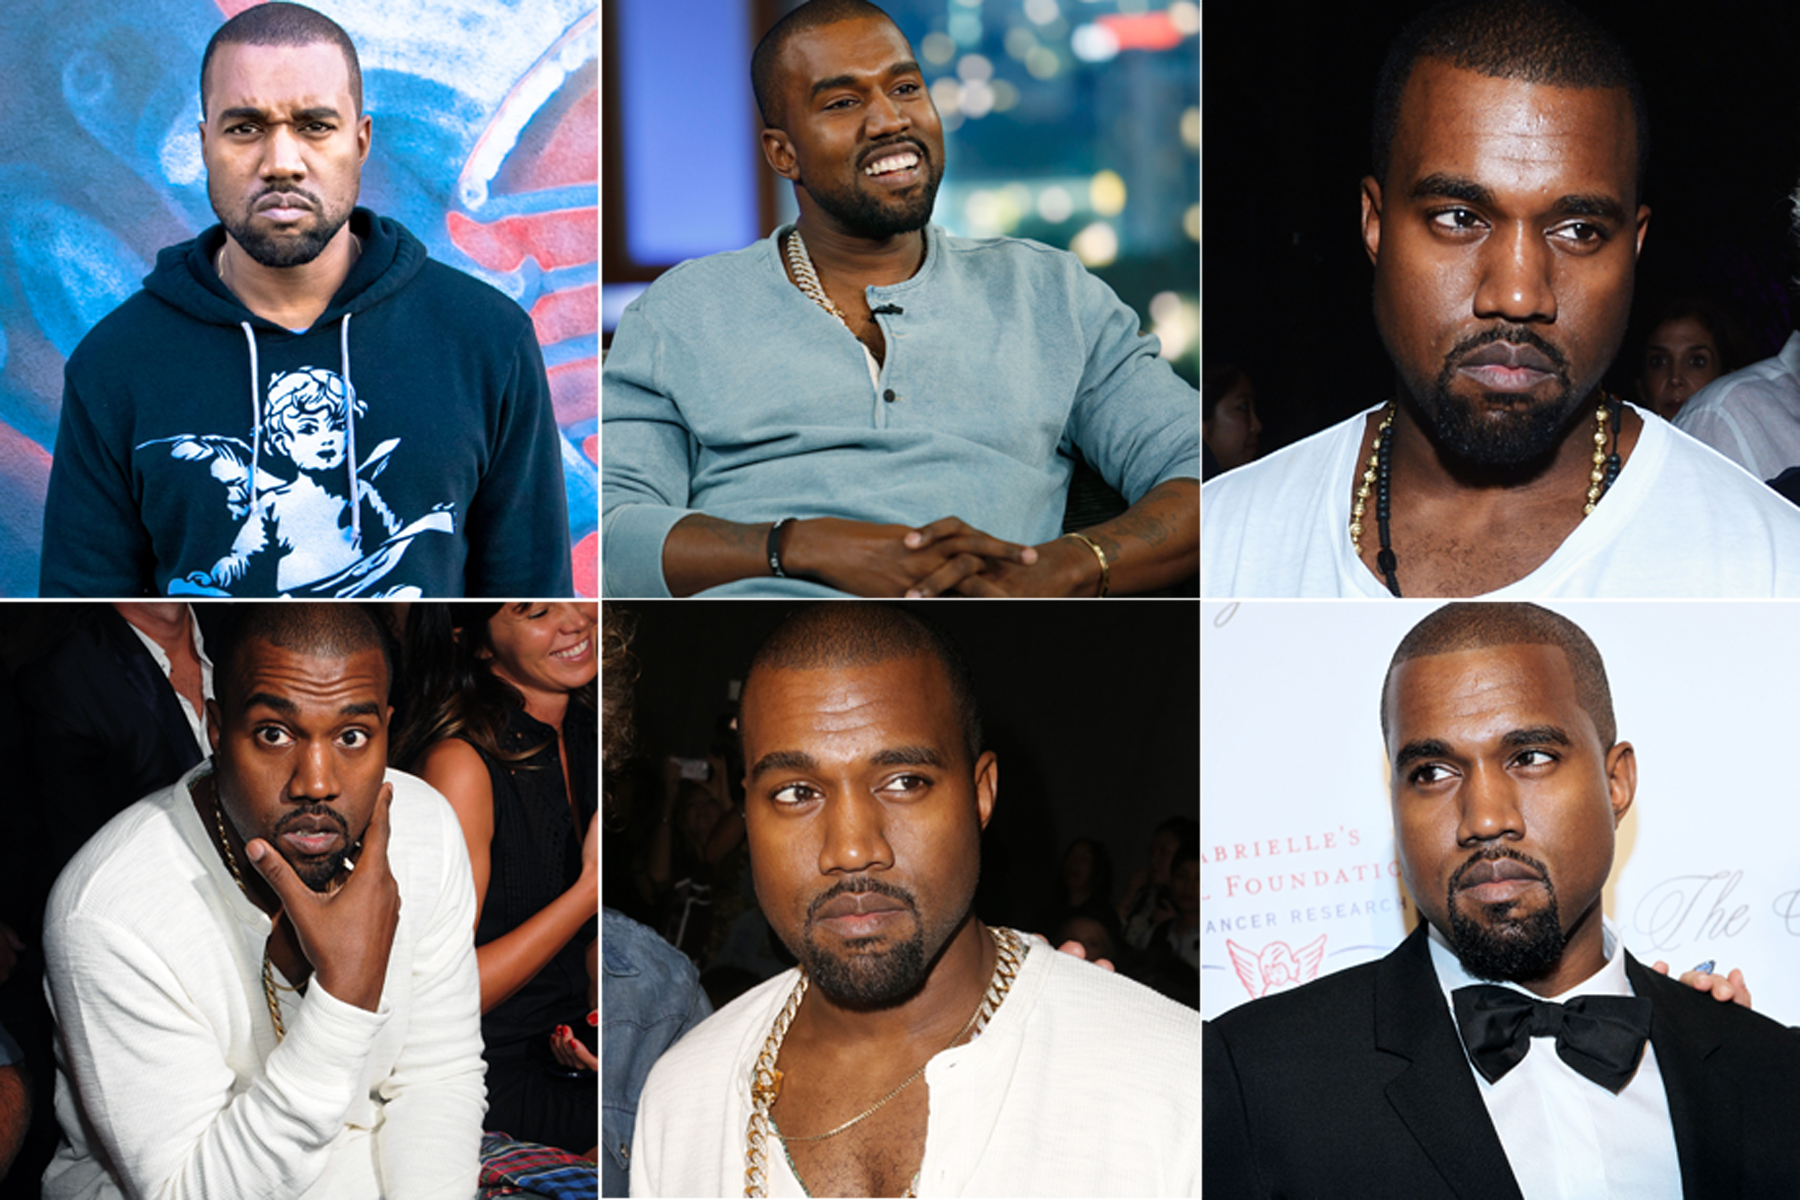 Kanye Wests 15 Best Quotes Of 2013 Rolling Stone